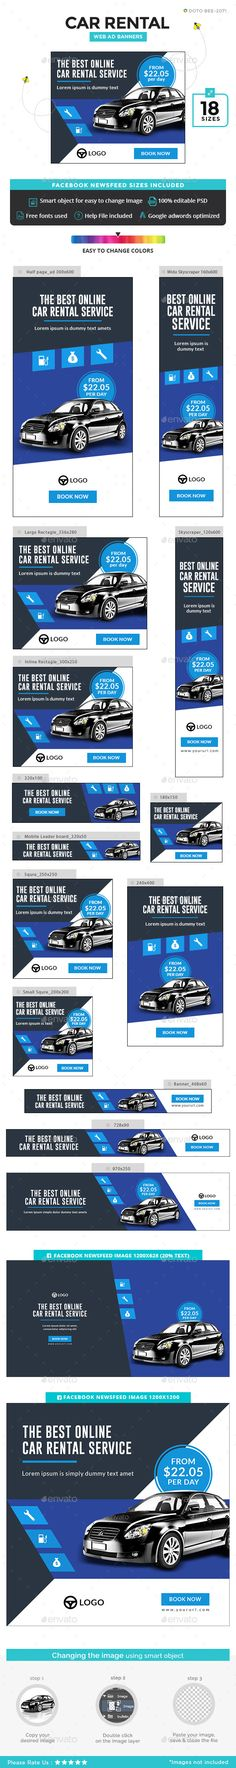 Car Rental Banners - #Banners & Ads Web #Elements Download here: https://graphicriver.net/item/car-rental-banners/20056332?ref=alena994